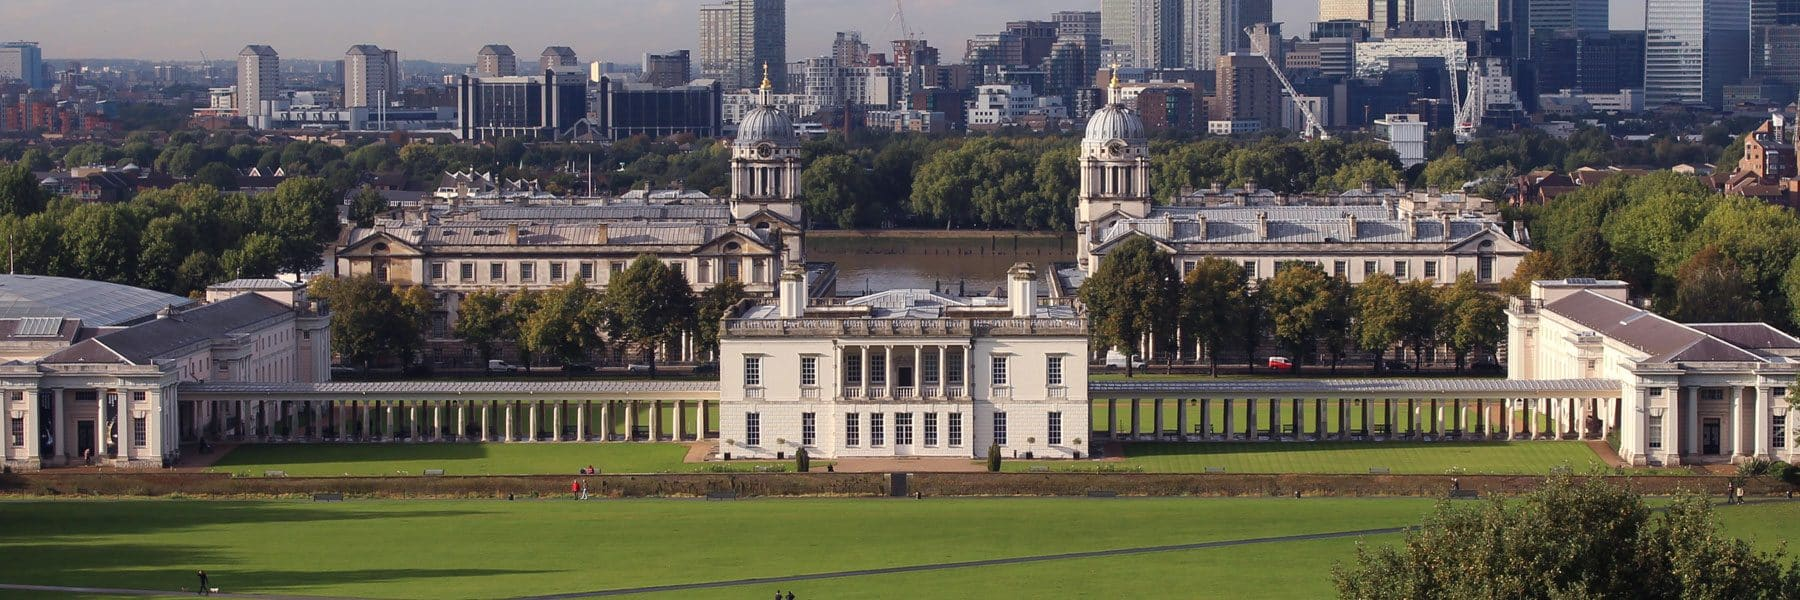 Greenwich Park, Royal Borough of Greenwich